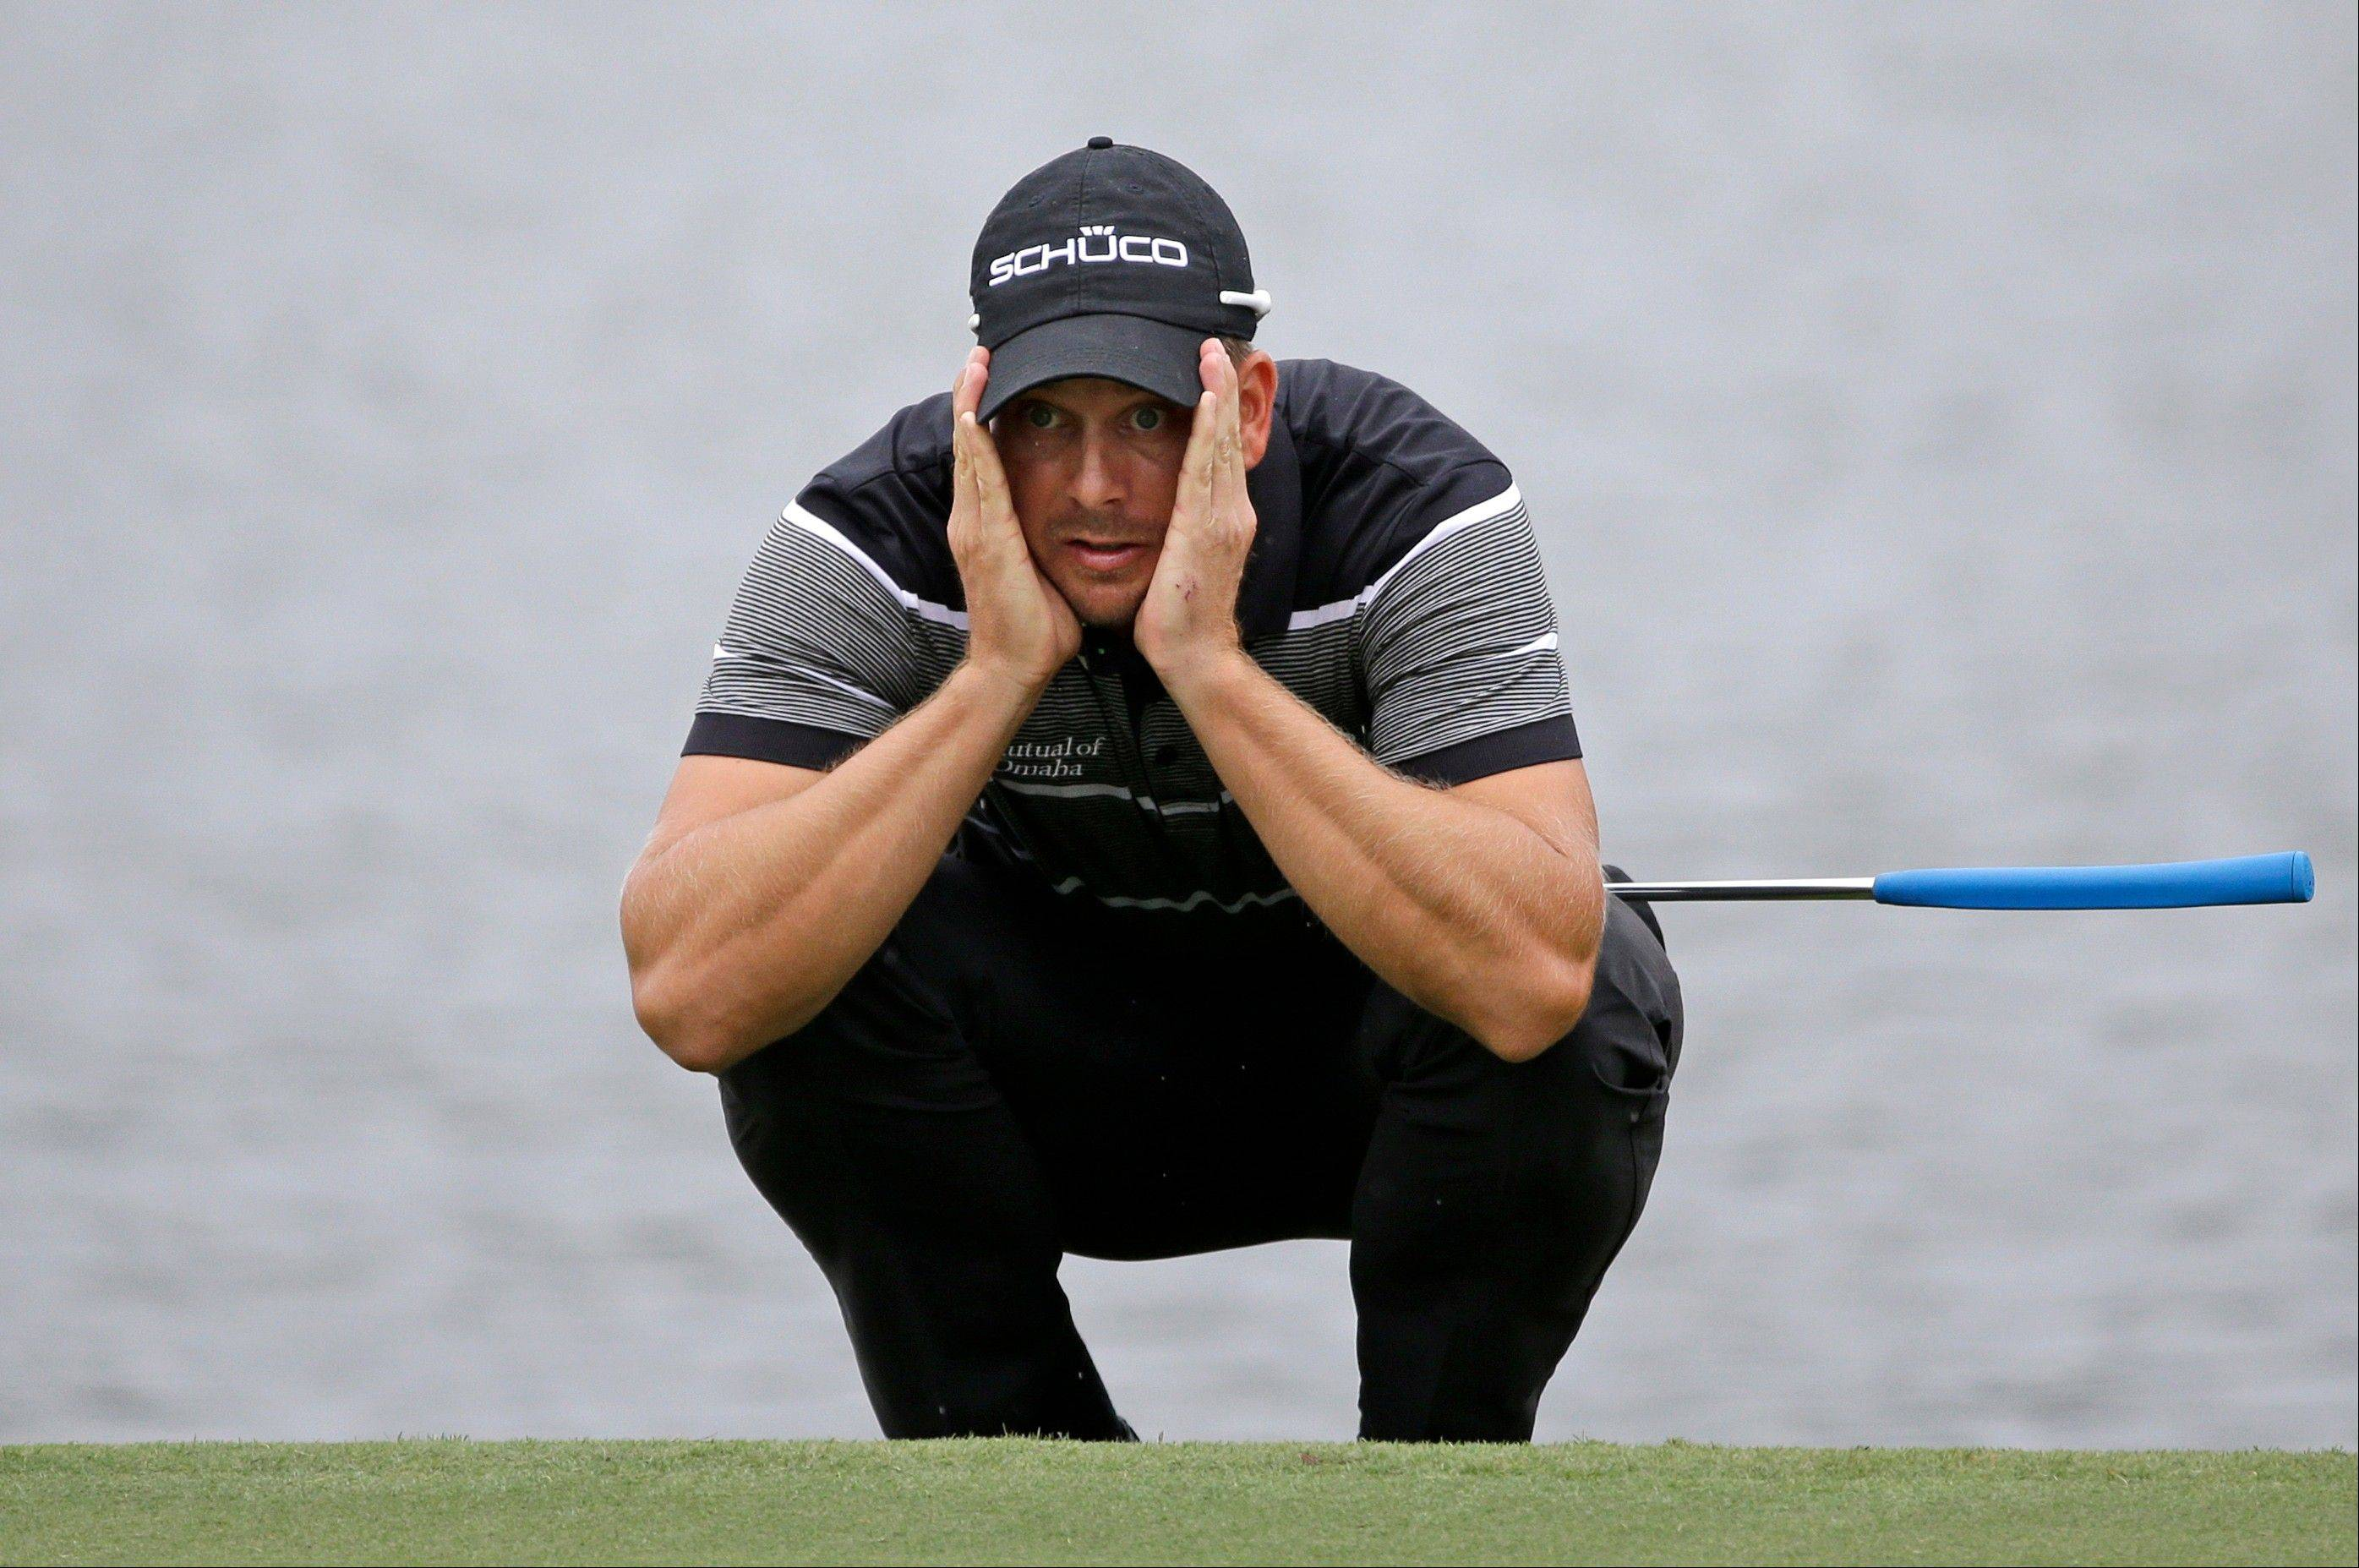 Henrik Stenson eyes his putt on the sixth hole Saturday at the Tour Championship at East Lake Golf Club in Atlanta.